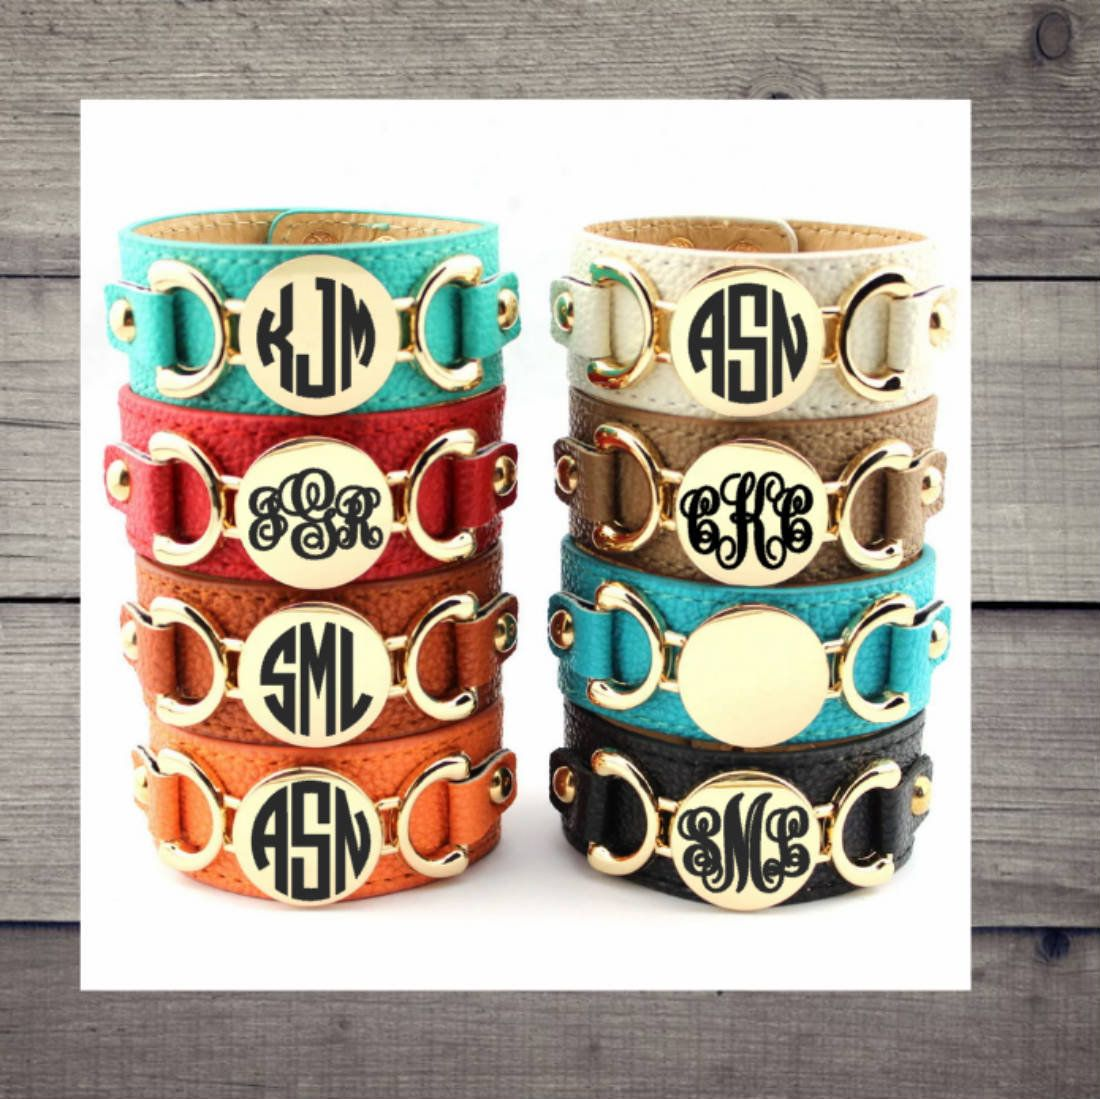 Monogrammed Leather Cuff Bracelets Personalized Jewelry Great Gift Ideas In 2020 Leather Cuffs Bracelet Monogrammed Leather Leather Cuffs